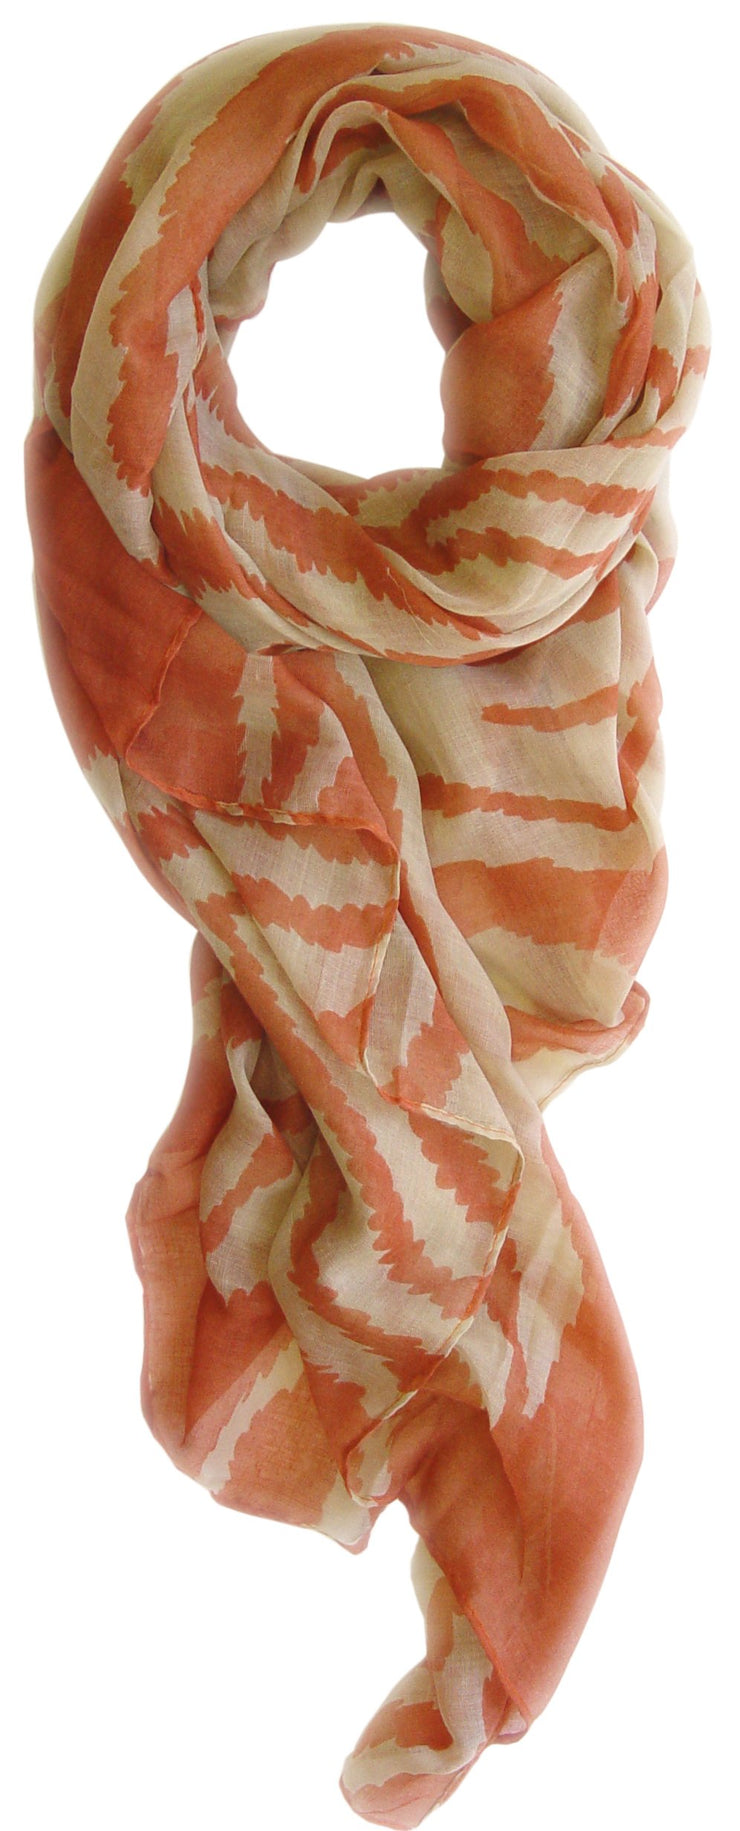 A1512-Electric-Zebra-Scarf-Rus